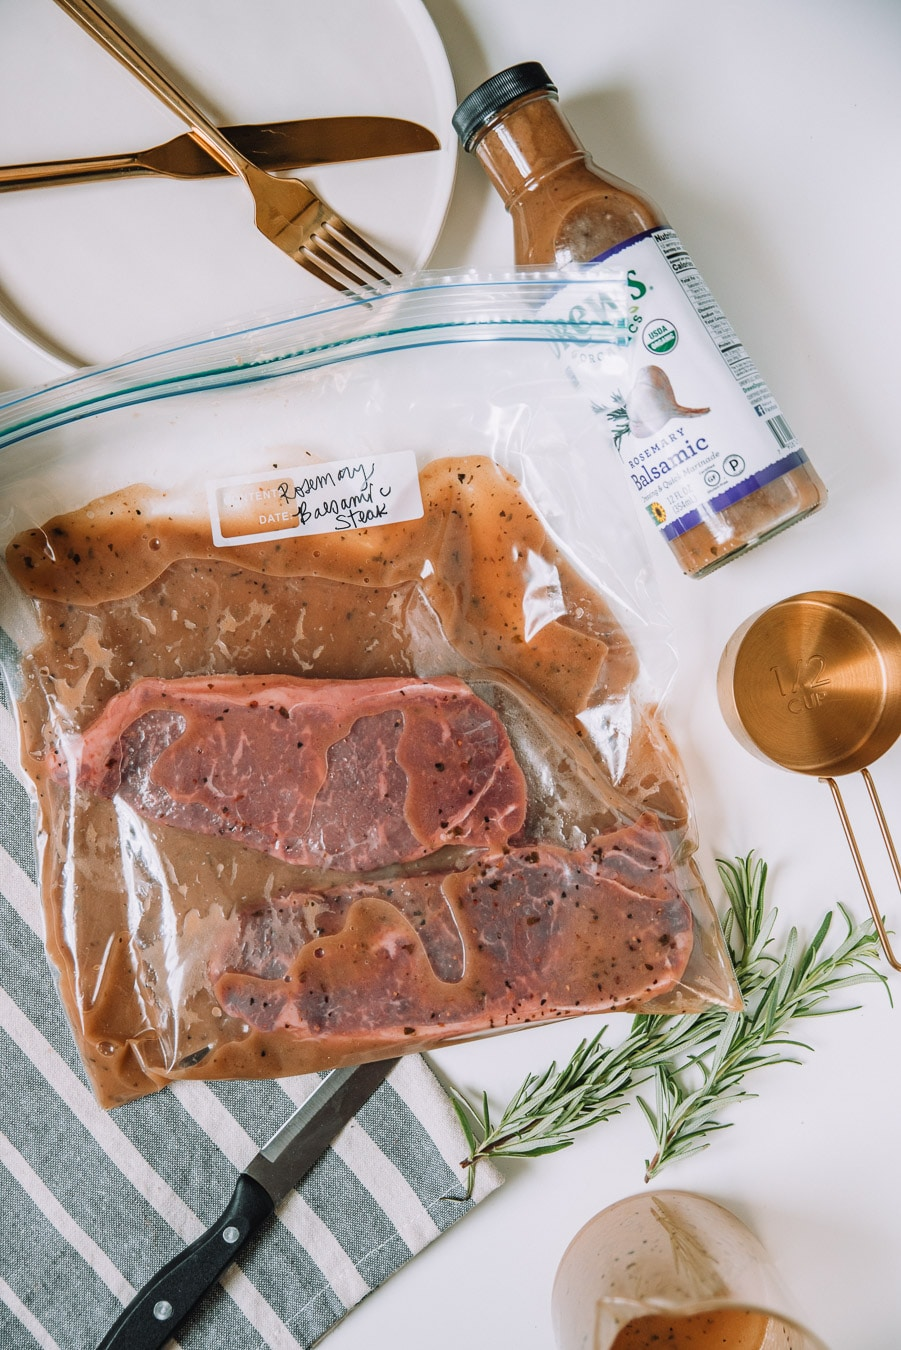 Steaks in a plastic bag marinating on a white table.